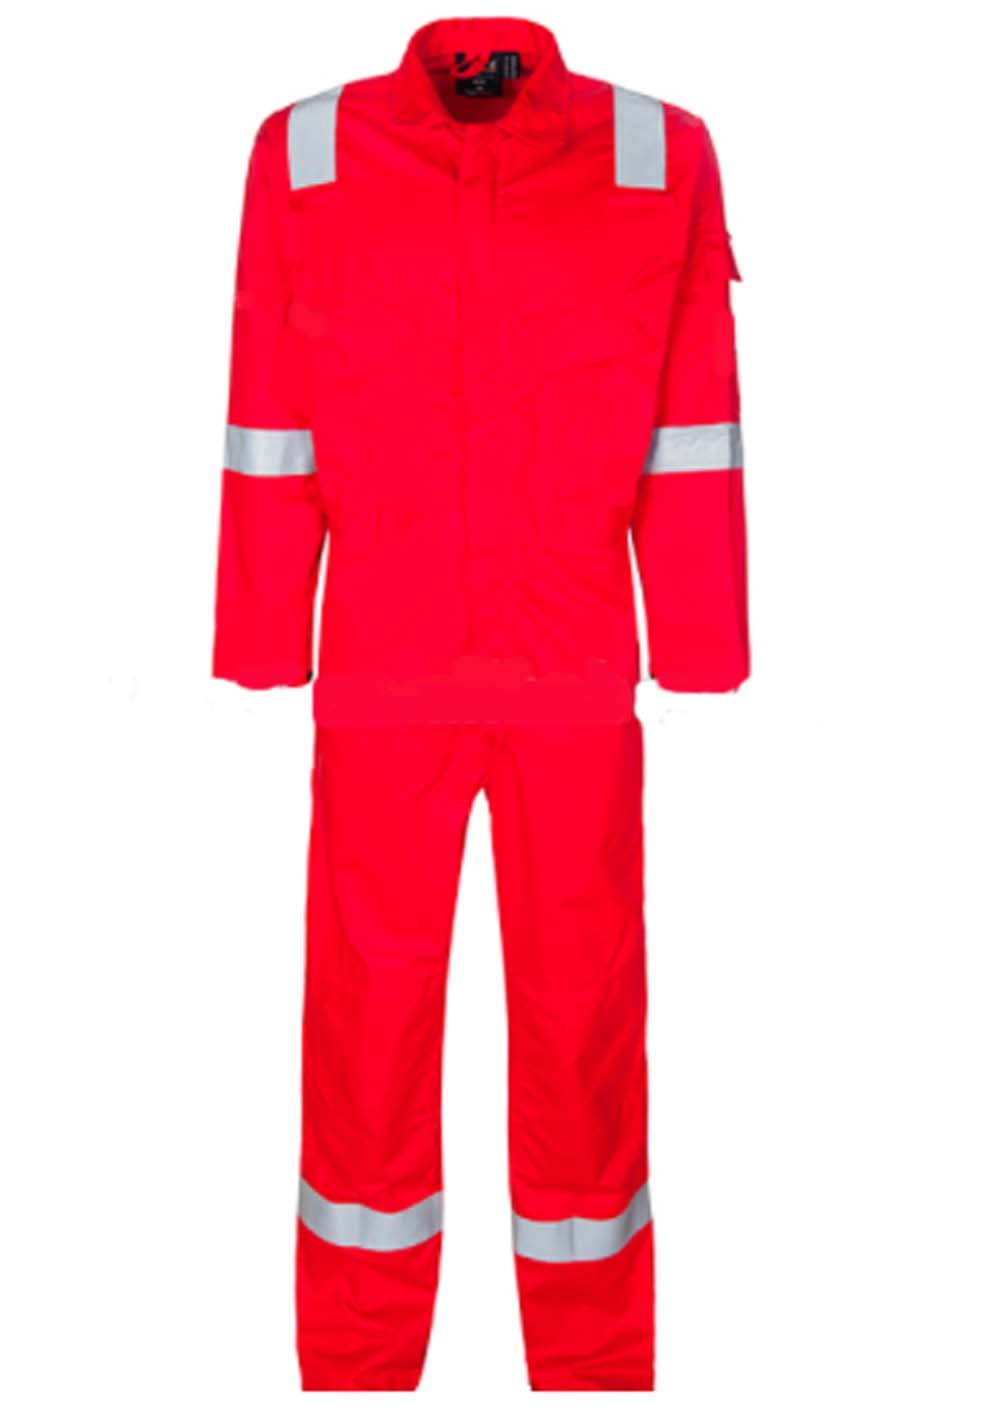 壁fr-industriesメンズレッドReflector Coveralls for Work wear 44 Regular B078P8GKXB